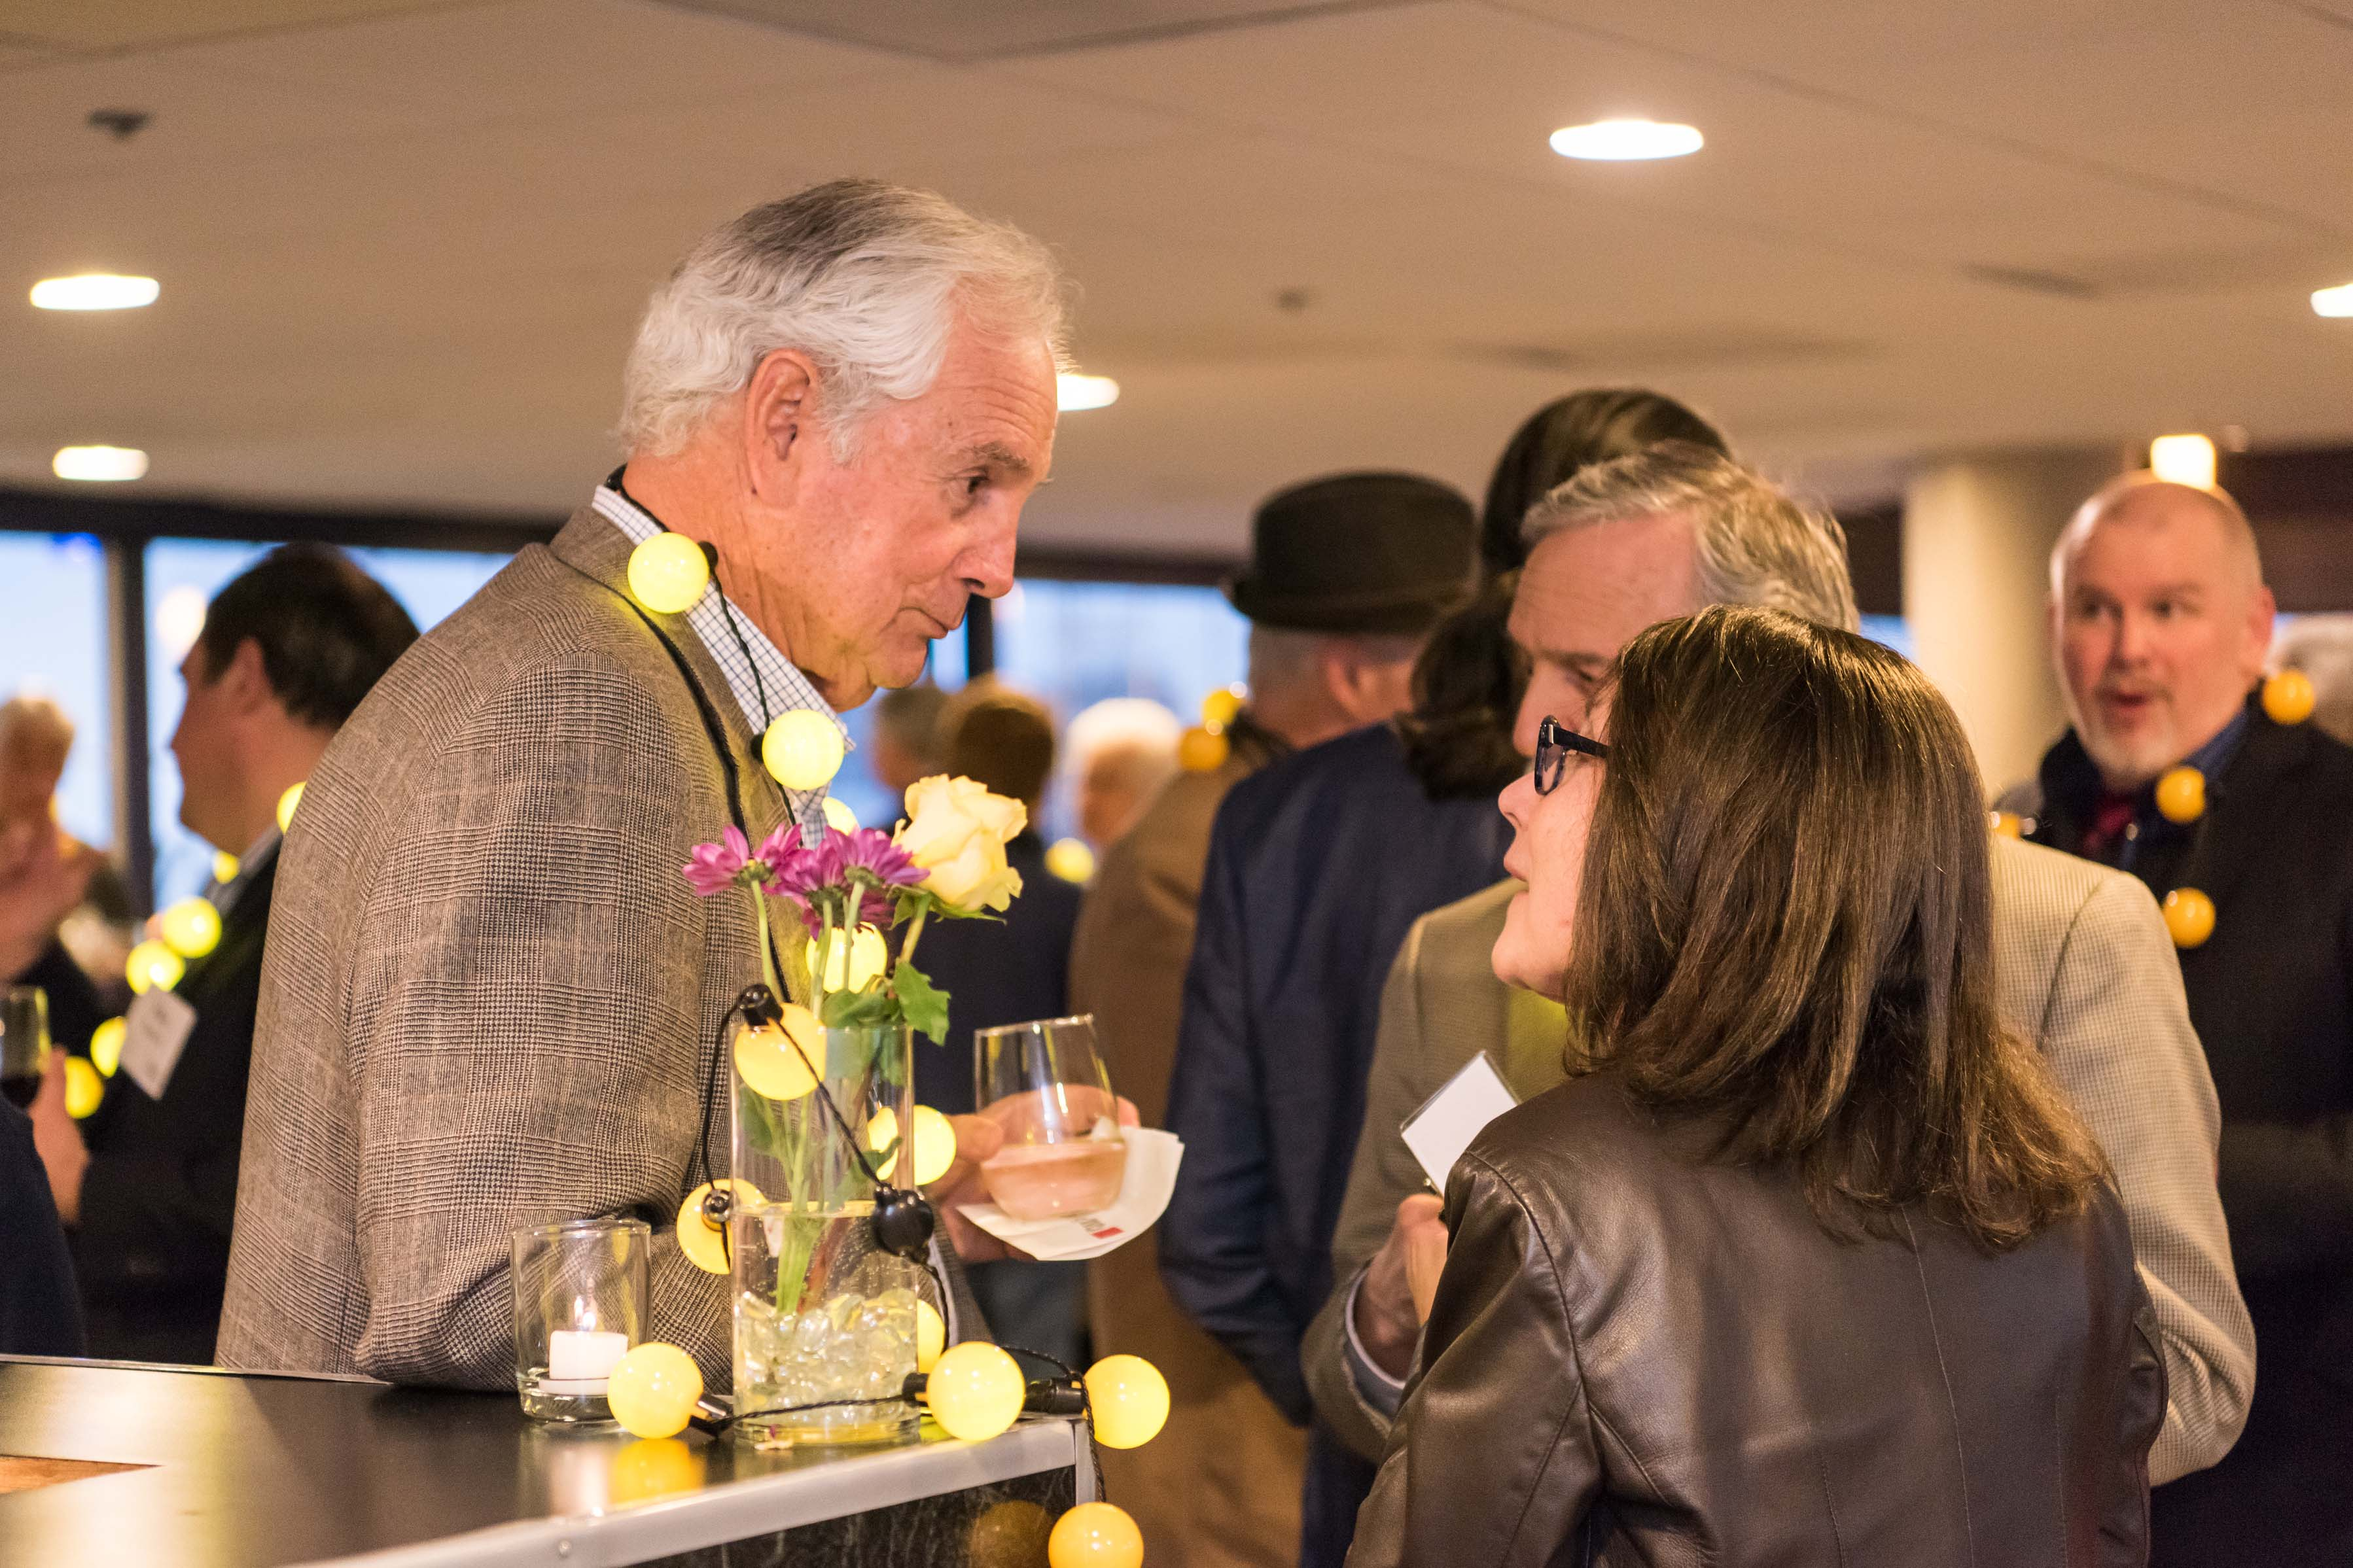 People interacting at Pier5 reception